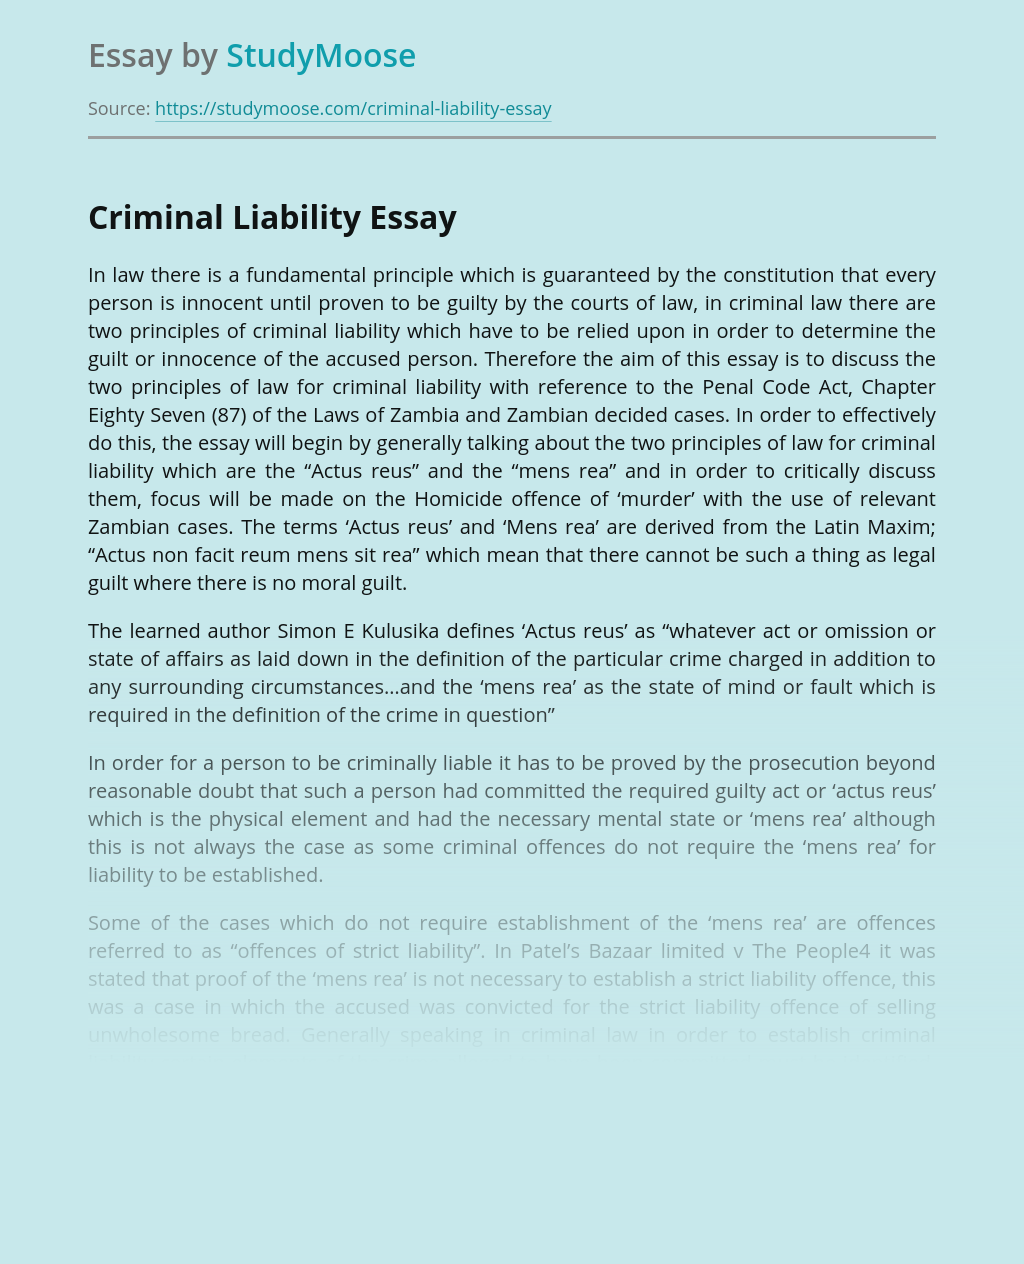 Criminal Liability Due to Law in Zambia